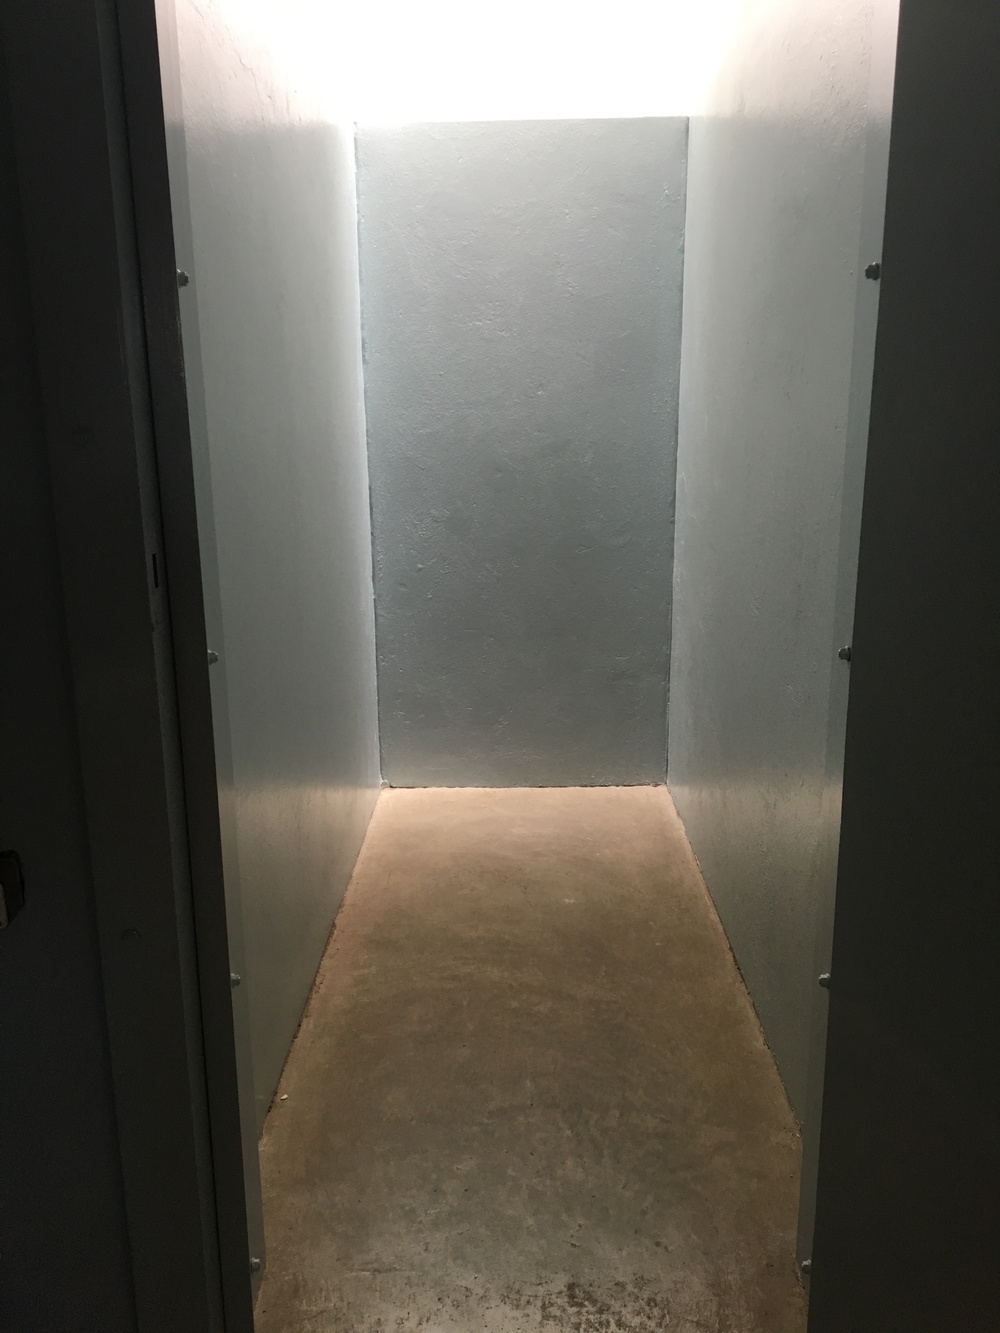 Typical size of a cell used for solitary confinement